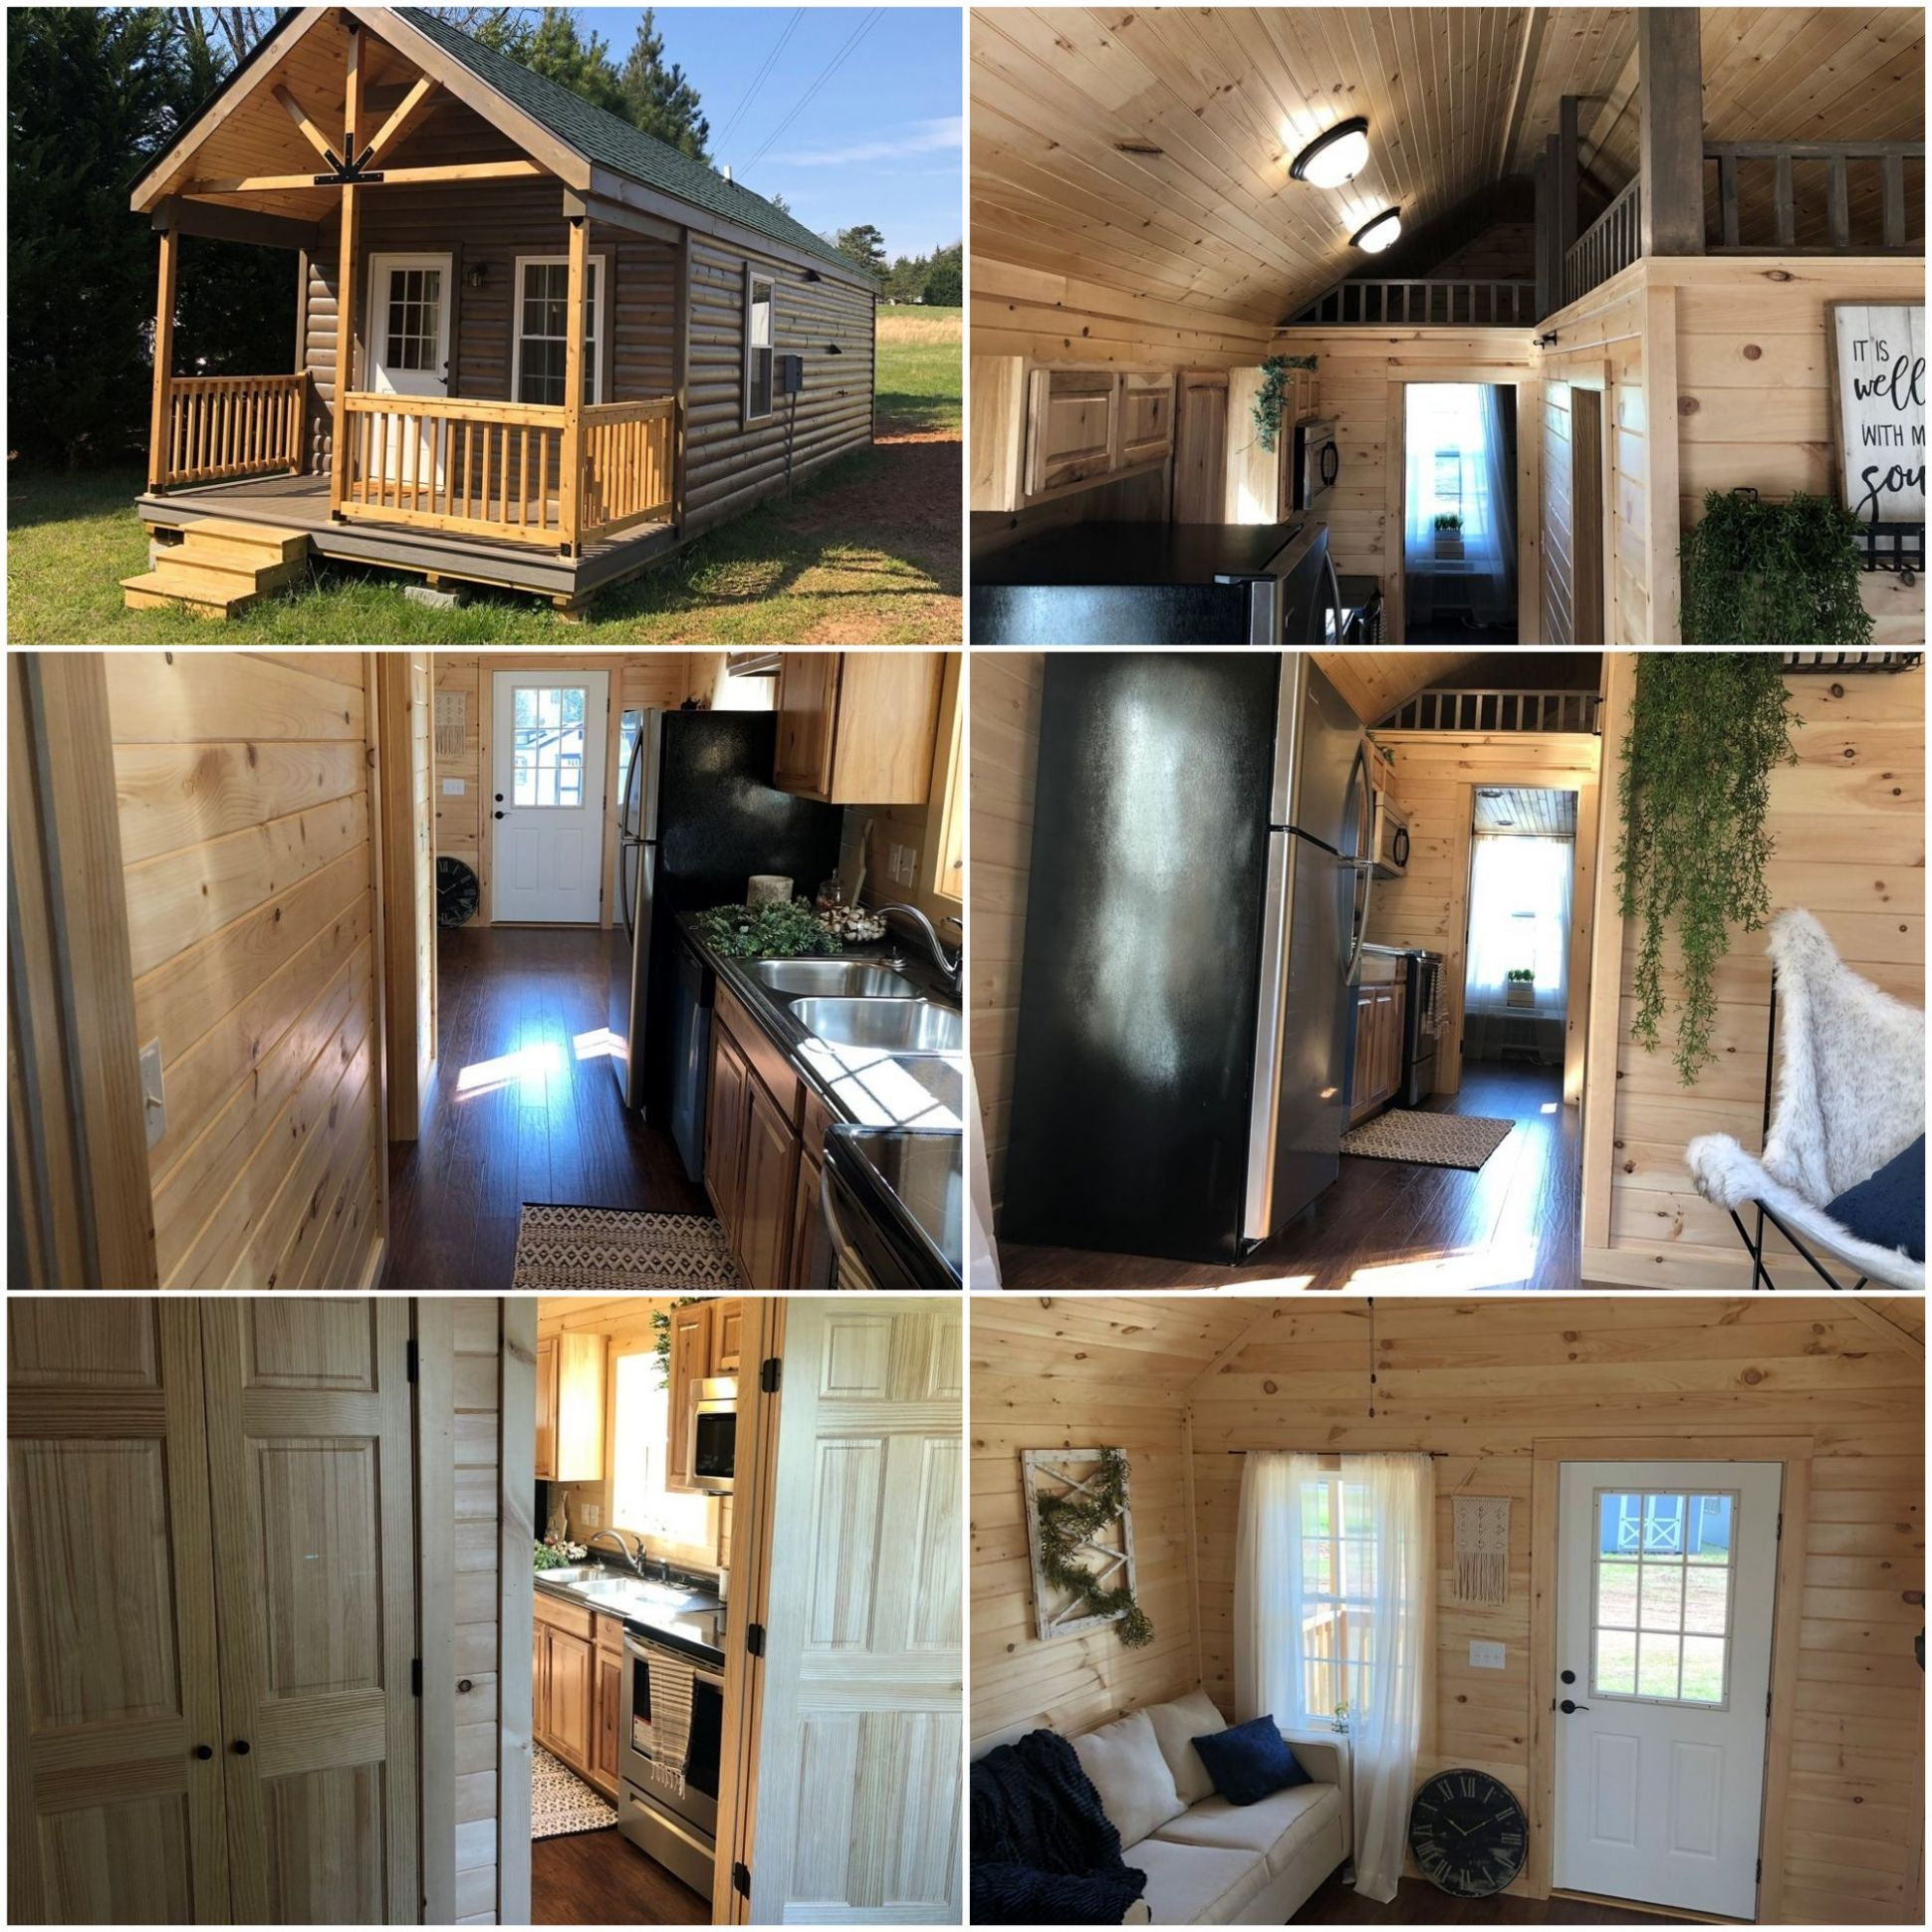 11x11 Tiny Home with Modular Certification in 11 | Best tiny ..